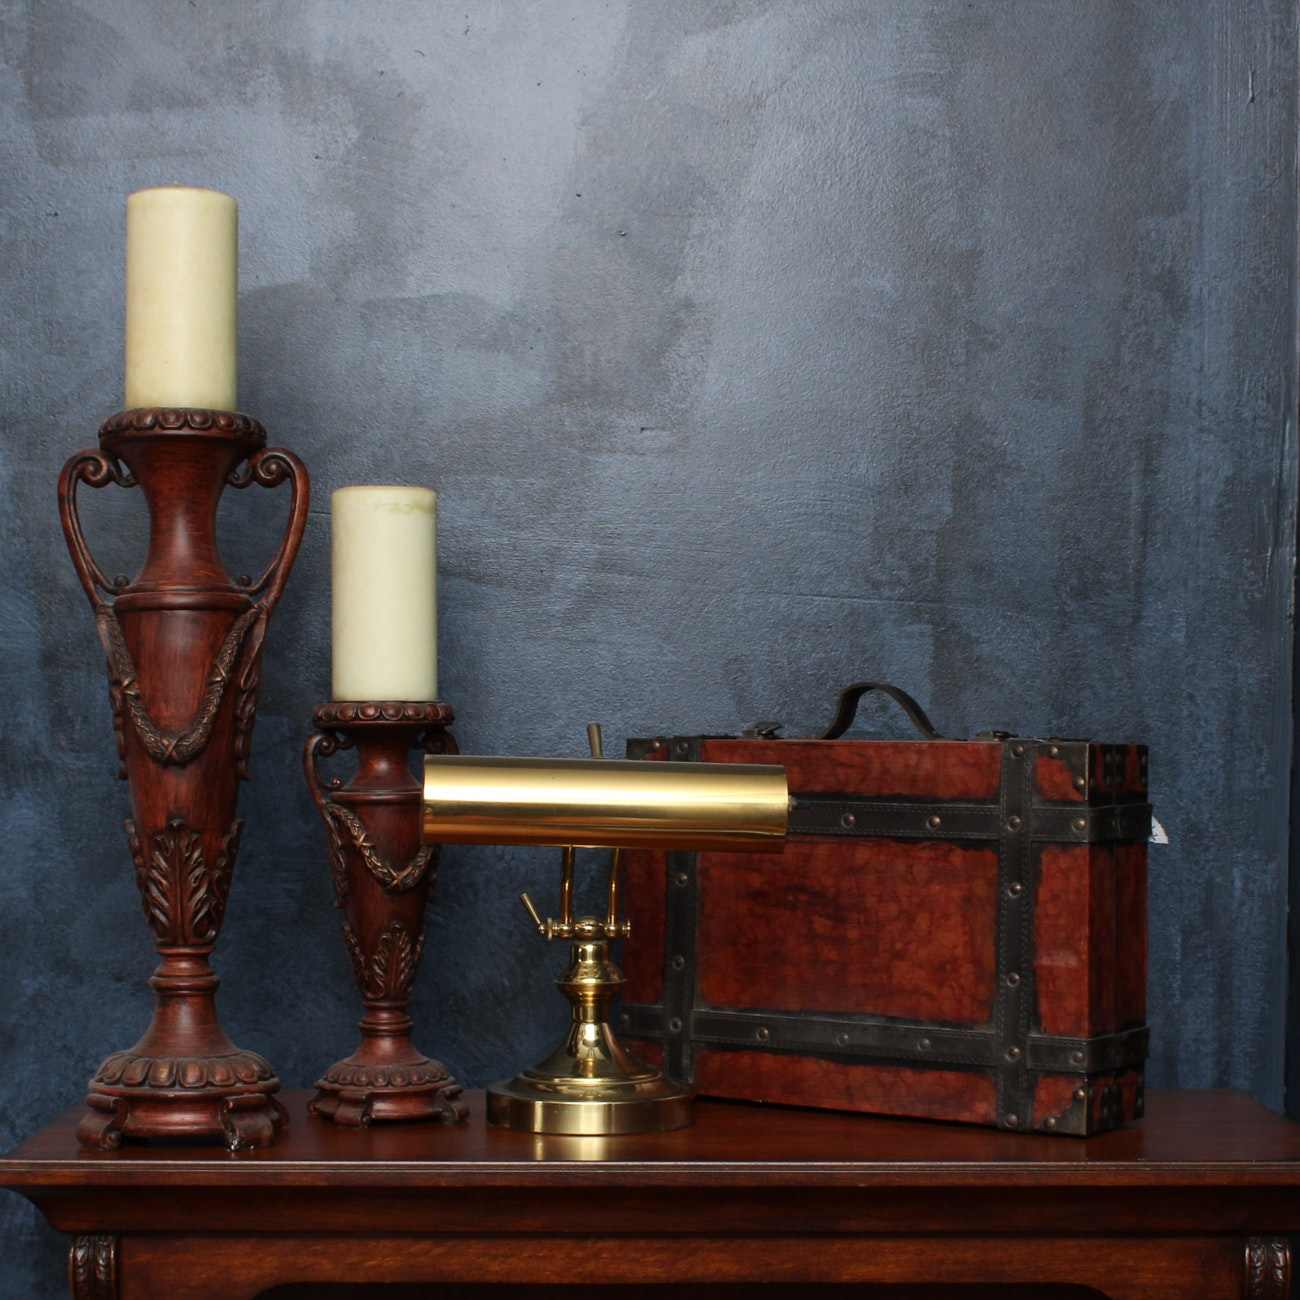 Brass Banker's Lamp, Urn Candlestick Holders, and Leather Case